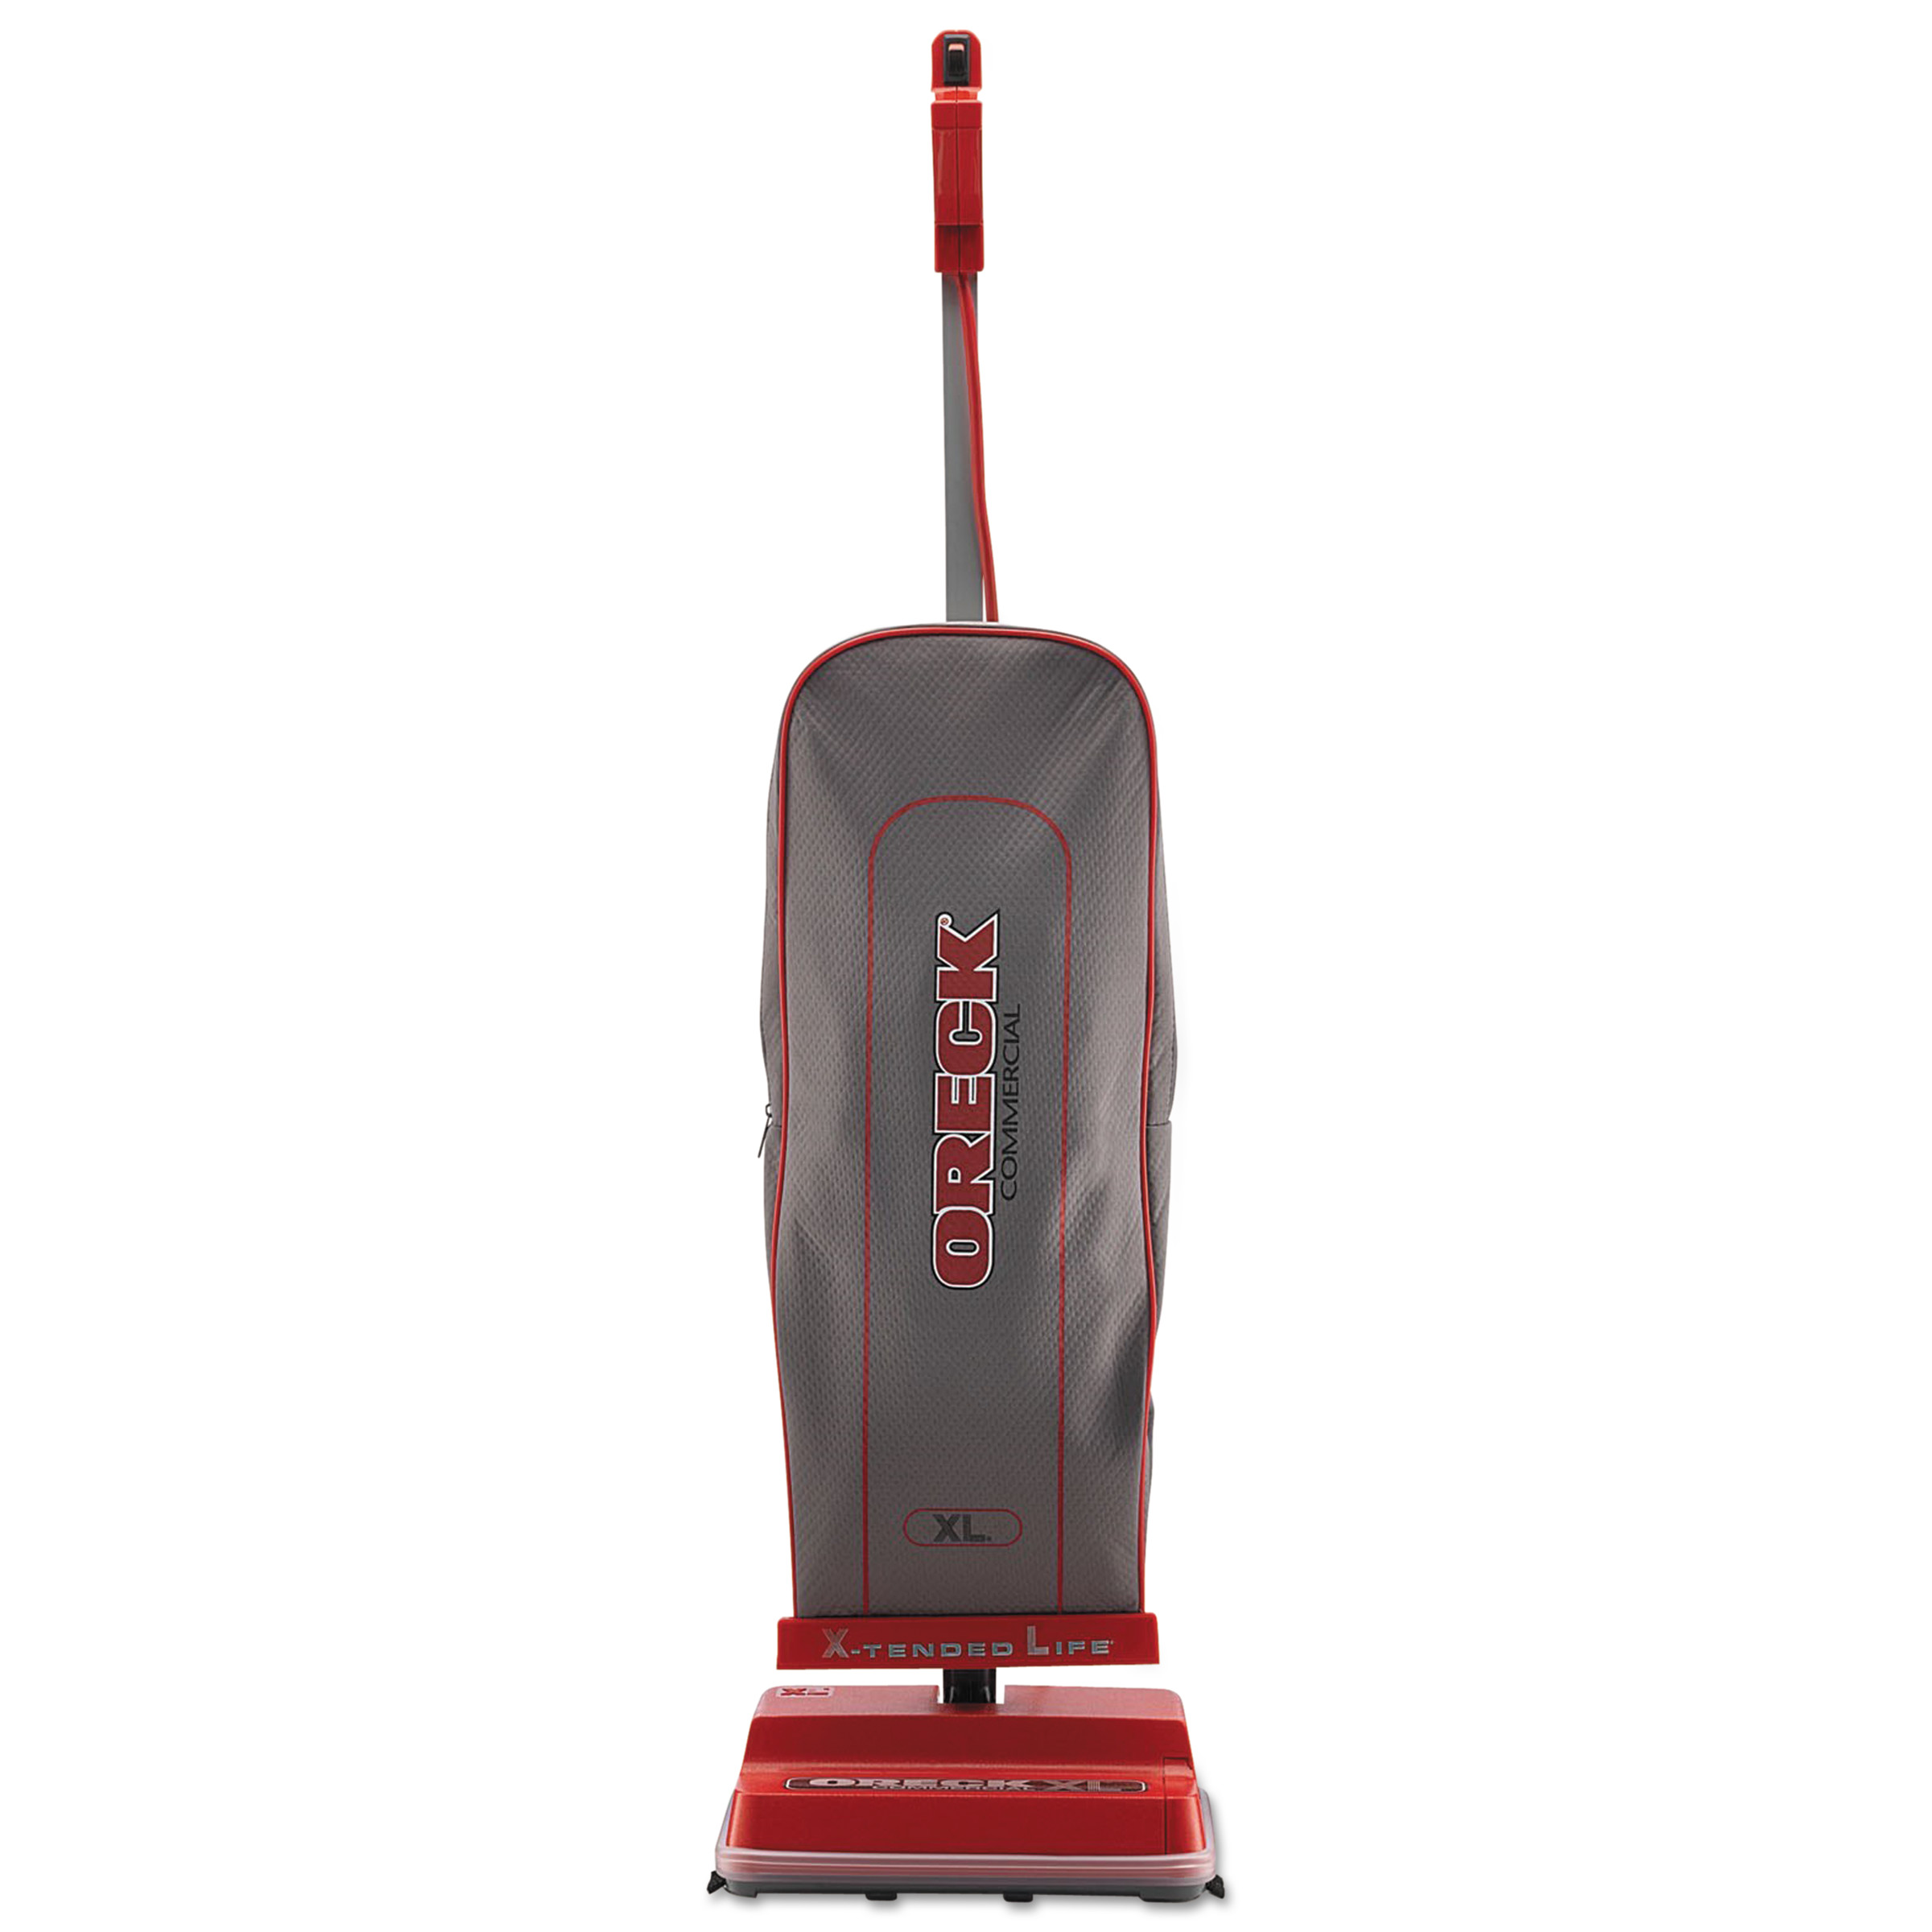 Oreck Commercial U2000RB-1 Commercial Upright Vacuum, 120 V, Red/Gray, 12 1/2 x 9 1/4 x 47 3/4